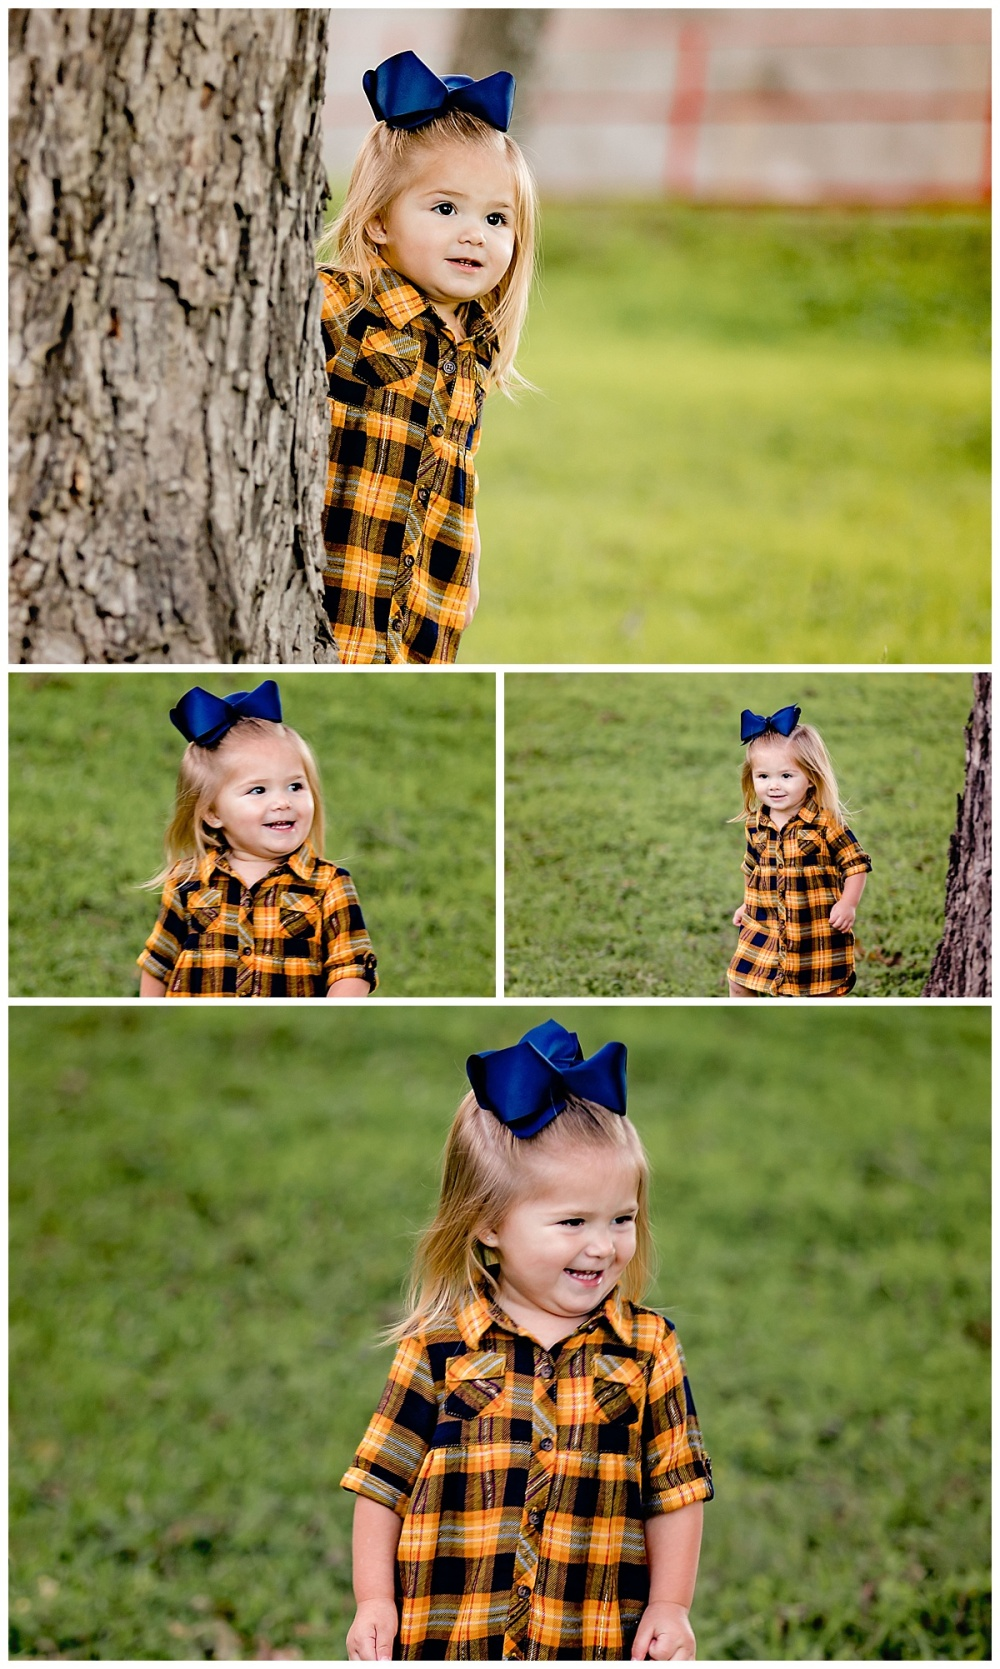 Landyn-Two-Year-Birthday-Photos-Walnut-Springs-Park-Seguin-Texas-Carly-Barton-Photography_0005.jpg